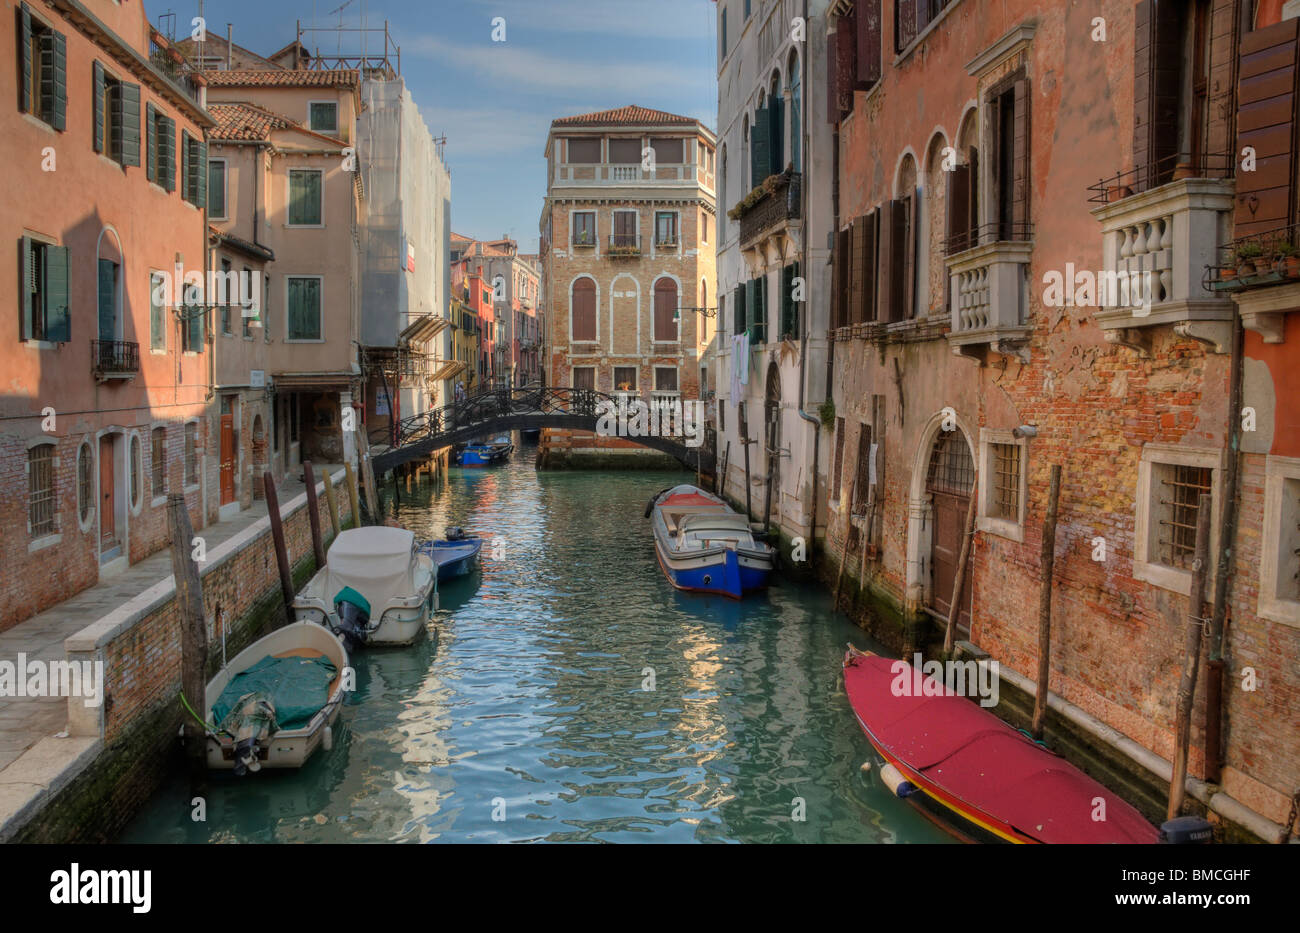 Backstreet Canal in Venice, Italy, showing beautiful soft light reflected on water and buildings - Stock Image